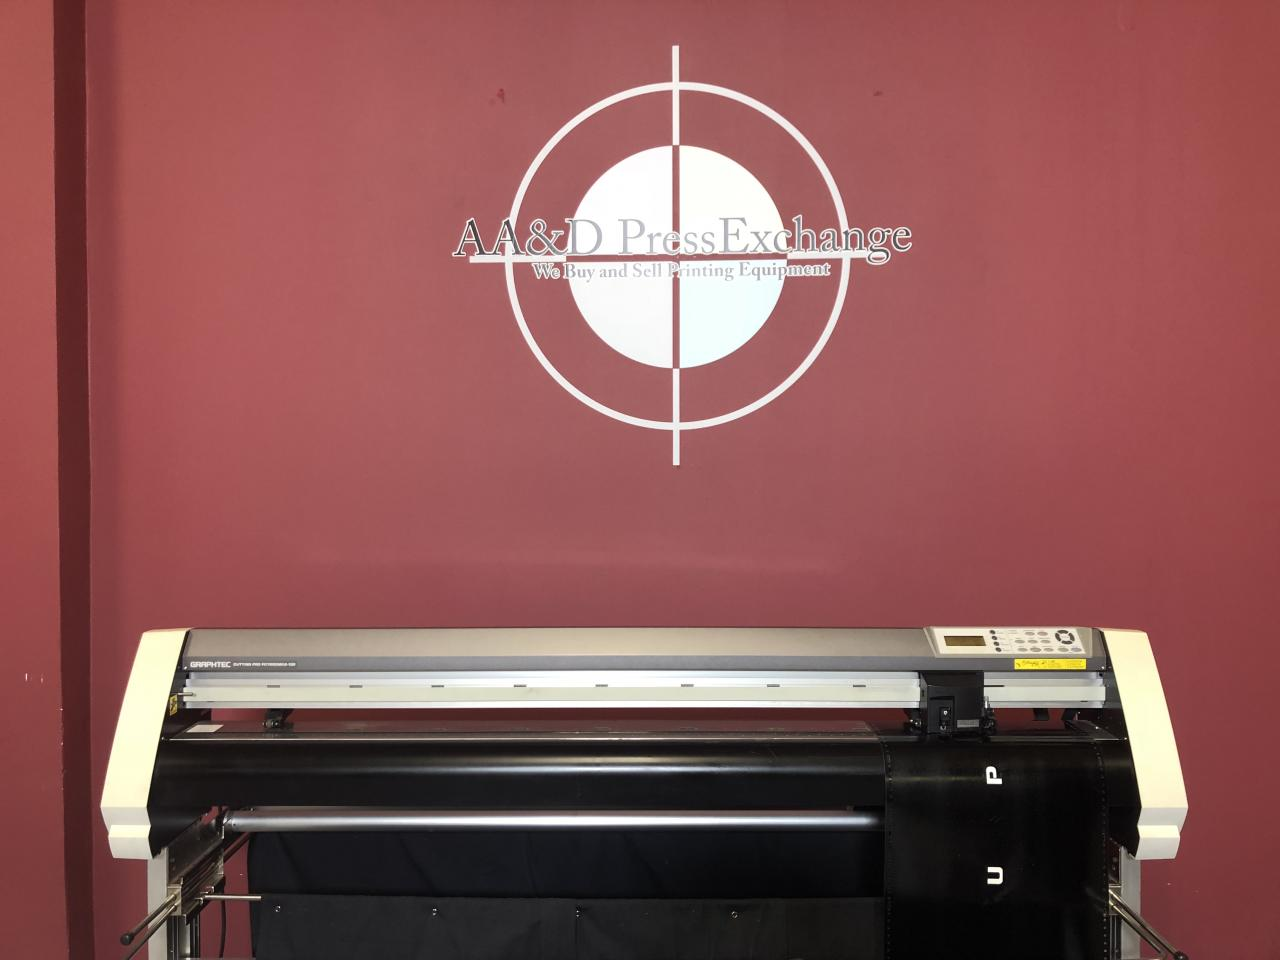 June 26th Used Printing Equipment Auction - AA&D PressExchange